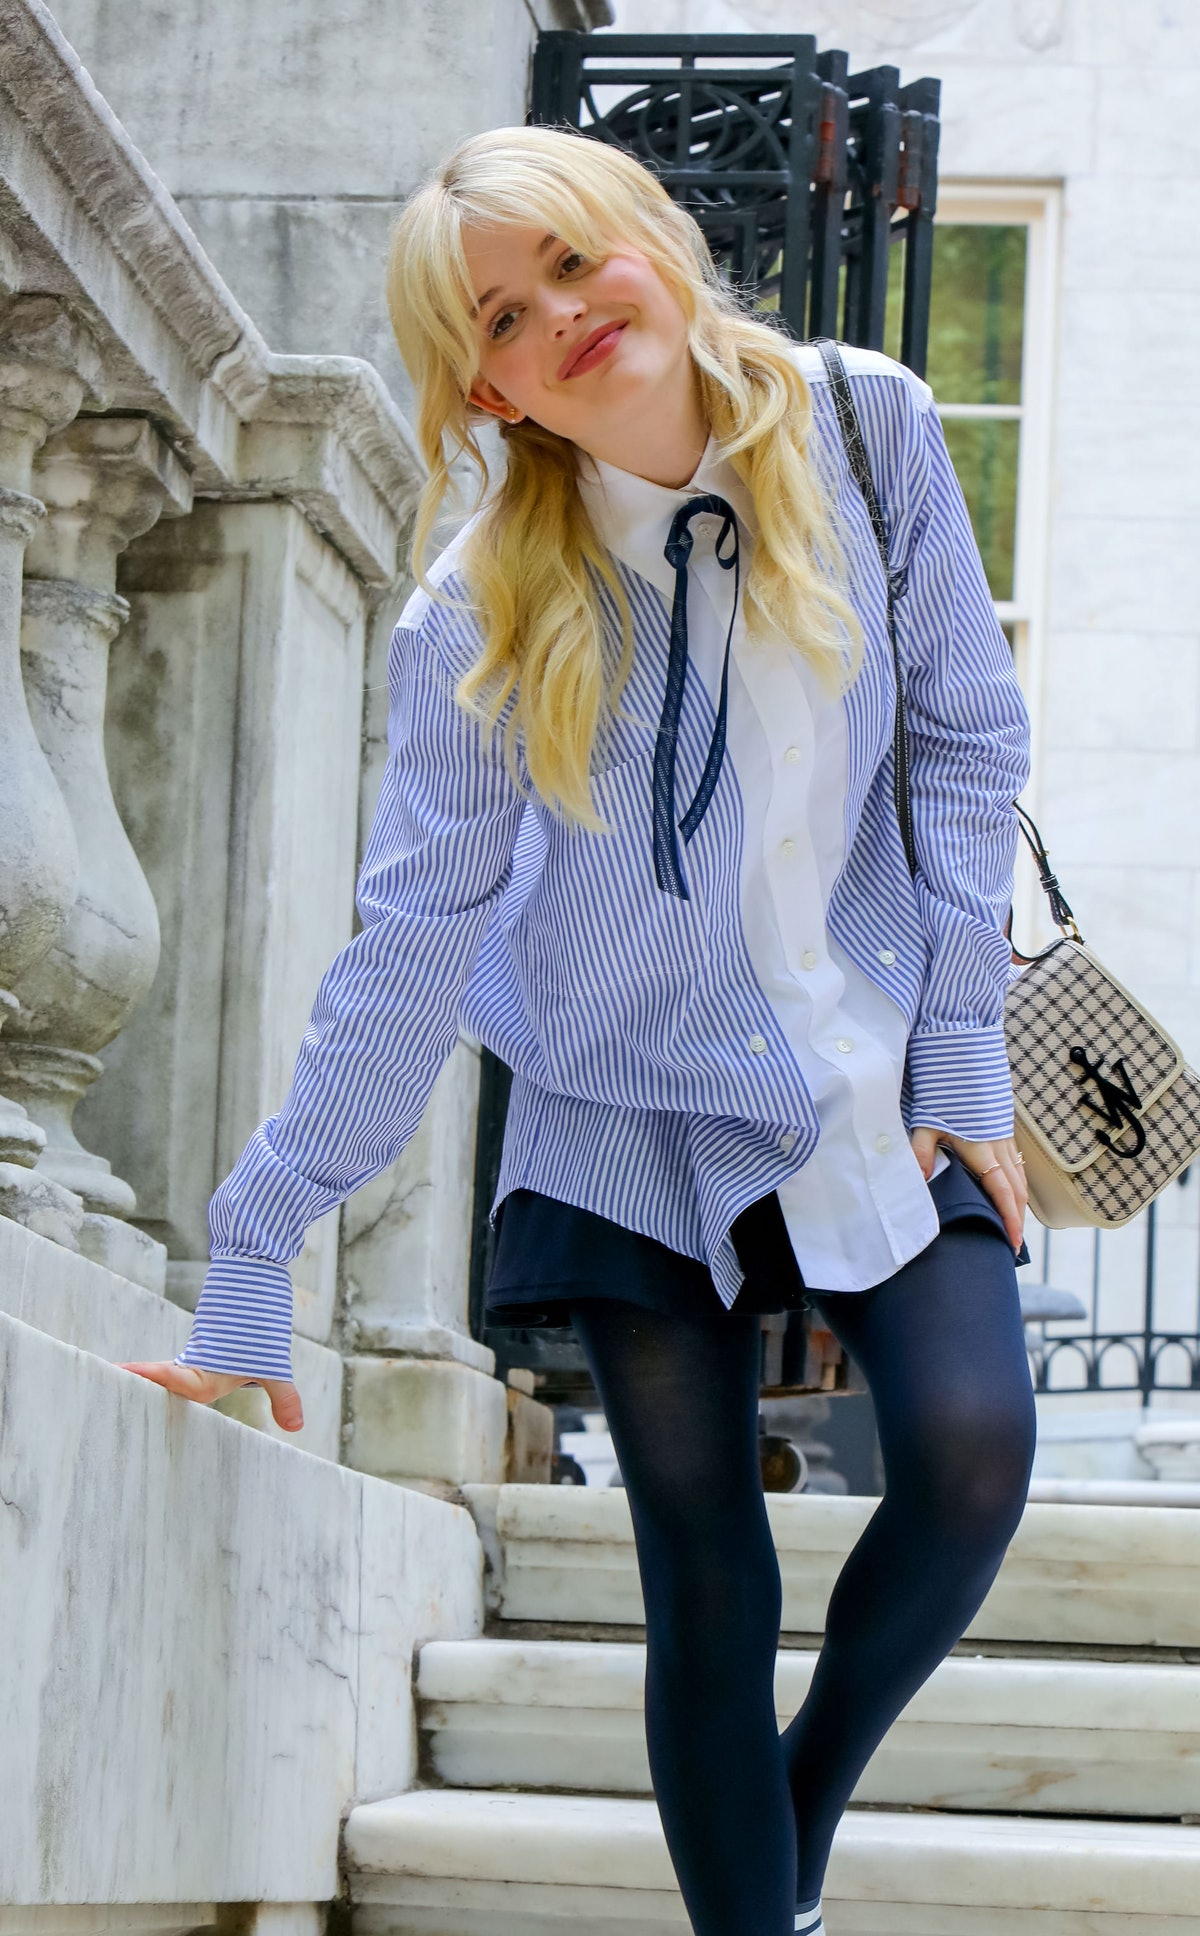 Emily Alyn Lind on the set of the Gossip Girl reboot